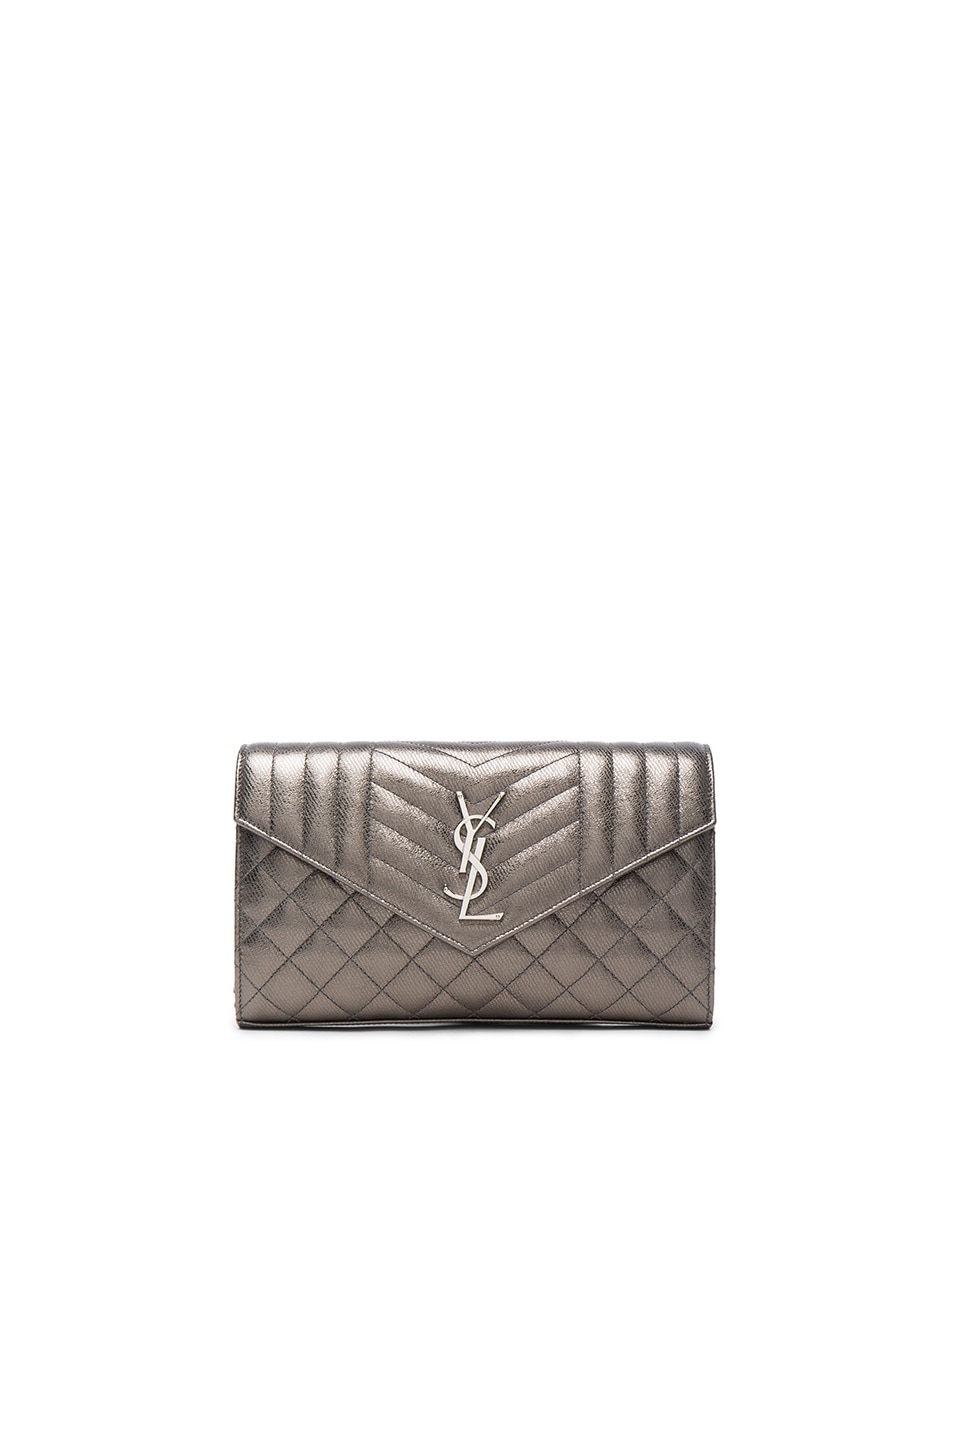 Image 1 of Saint Laurent Monogramme Envelope Chain Wallet in Graphite & Black